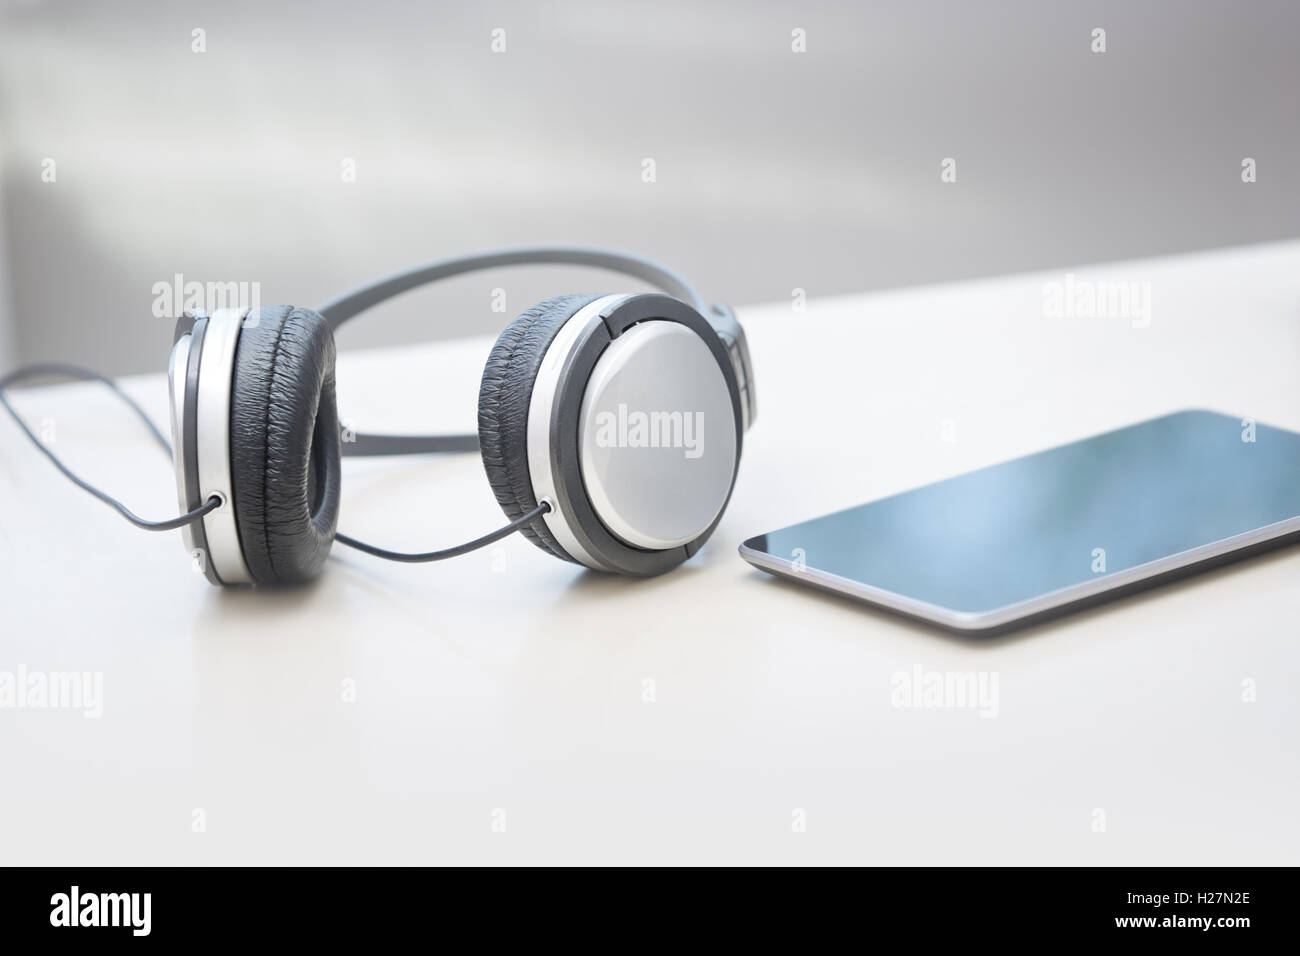 Headphones and digital tablet on a table - Stock Image